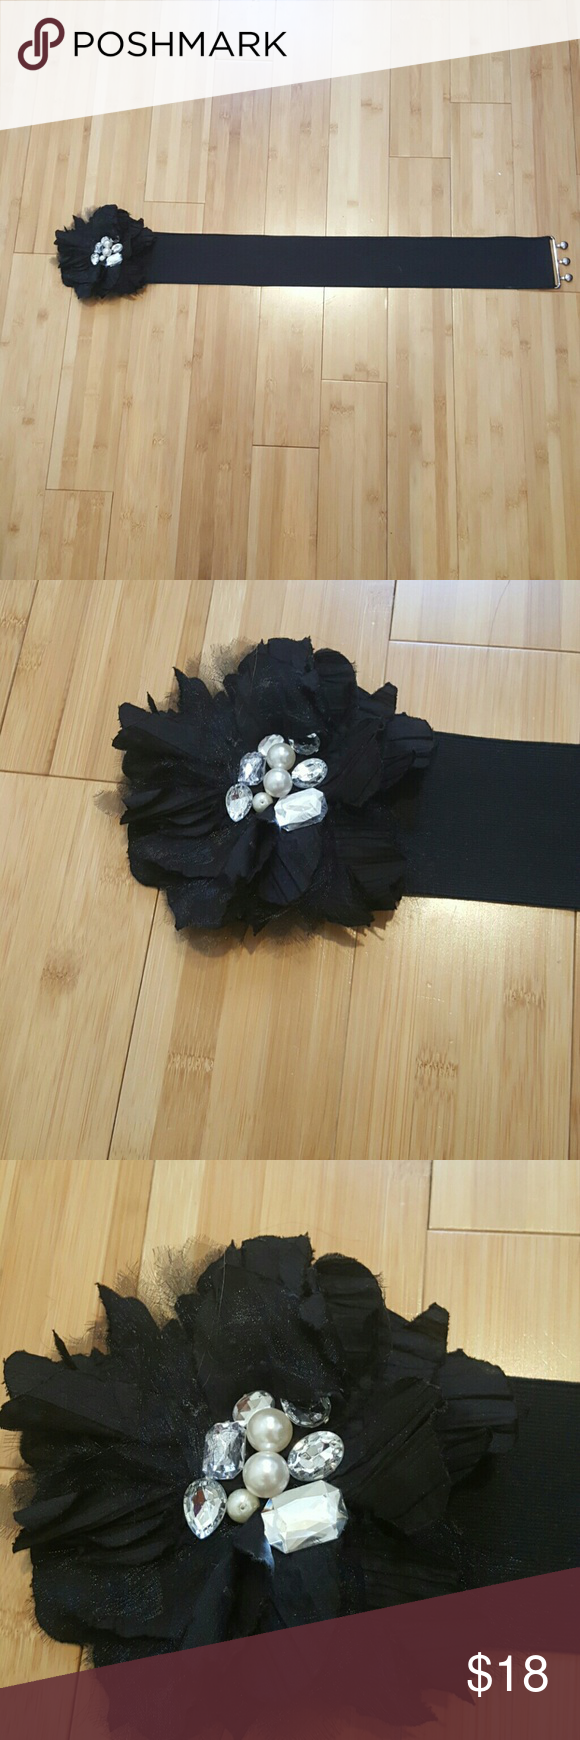 Flower Belt Gorgeous black flower belt by Bebe. Flower has gorgeous faux pearl and rhinestone detail in the center. Fits at the waist. Looks beautiful with a dress. This belt will dress up a simple dress or skirt and blouse. bebe Accessories Belts